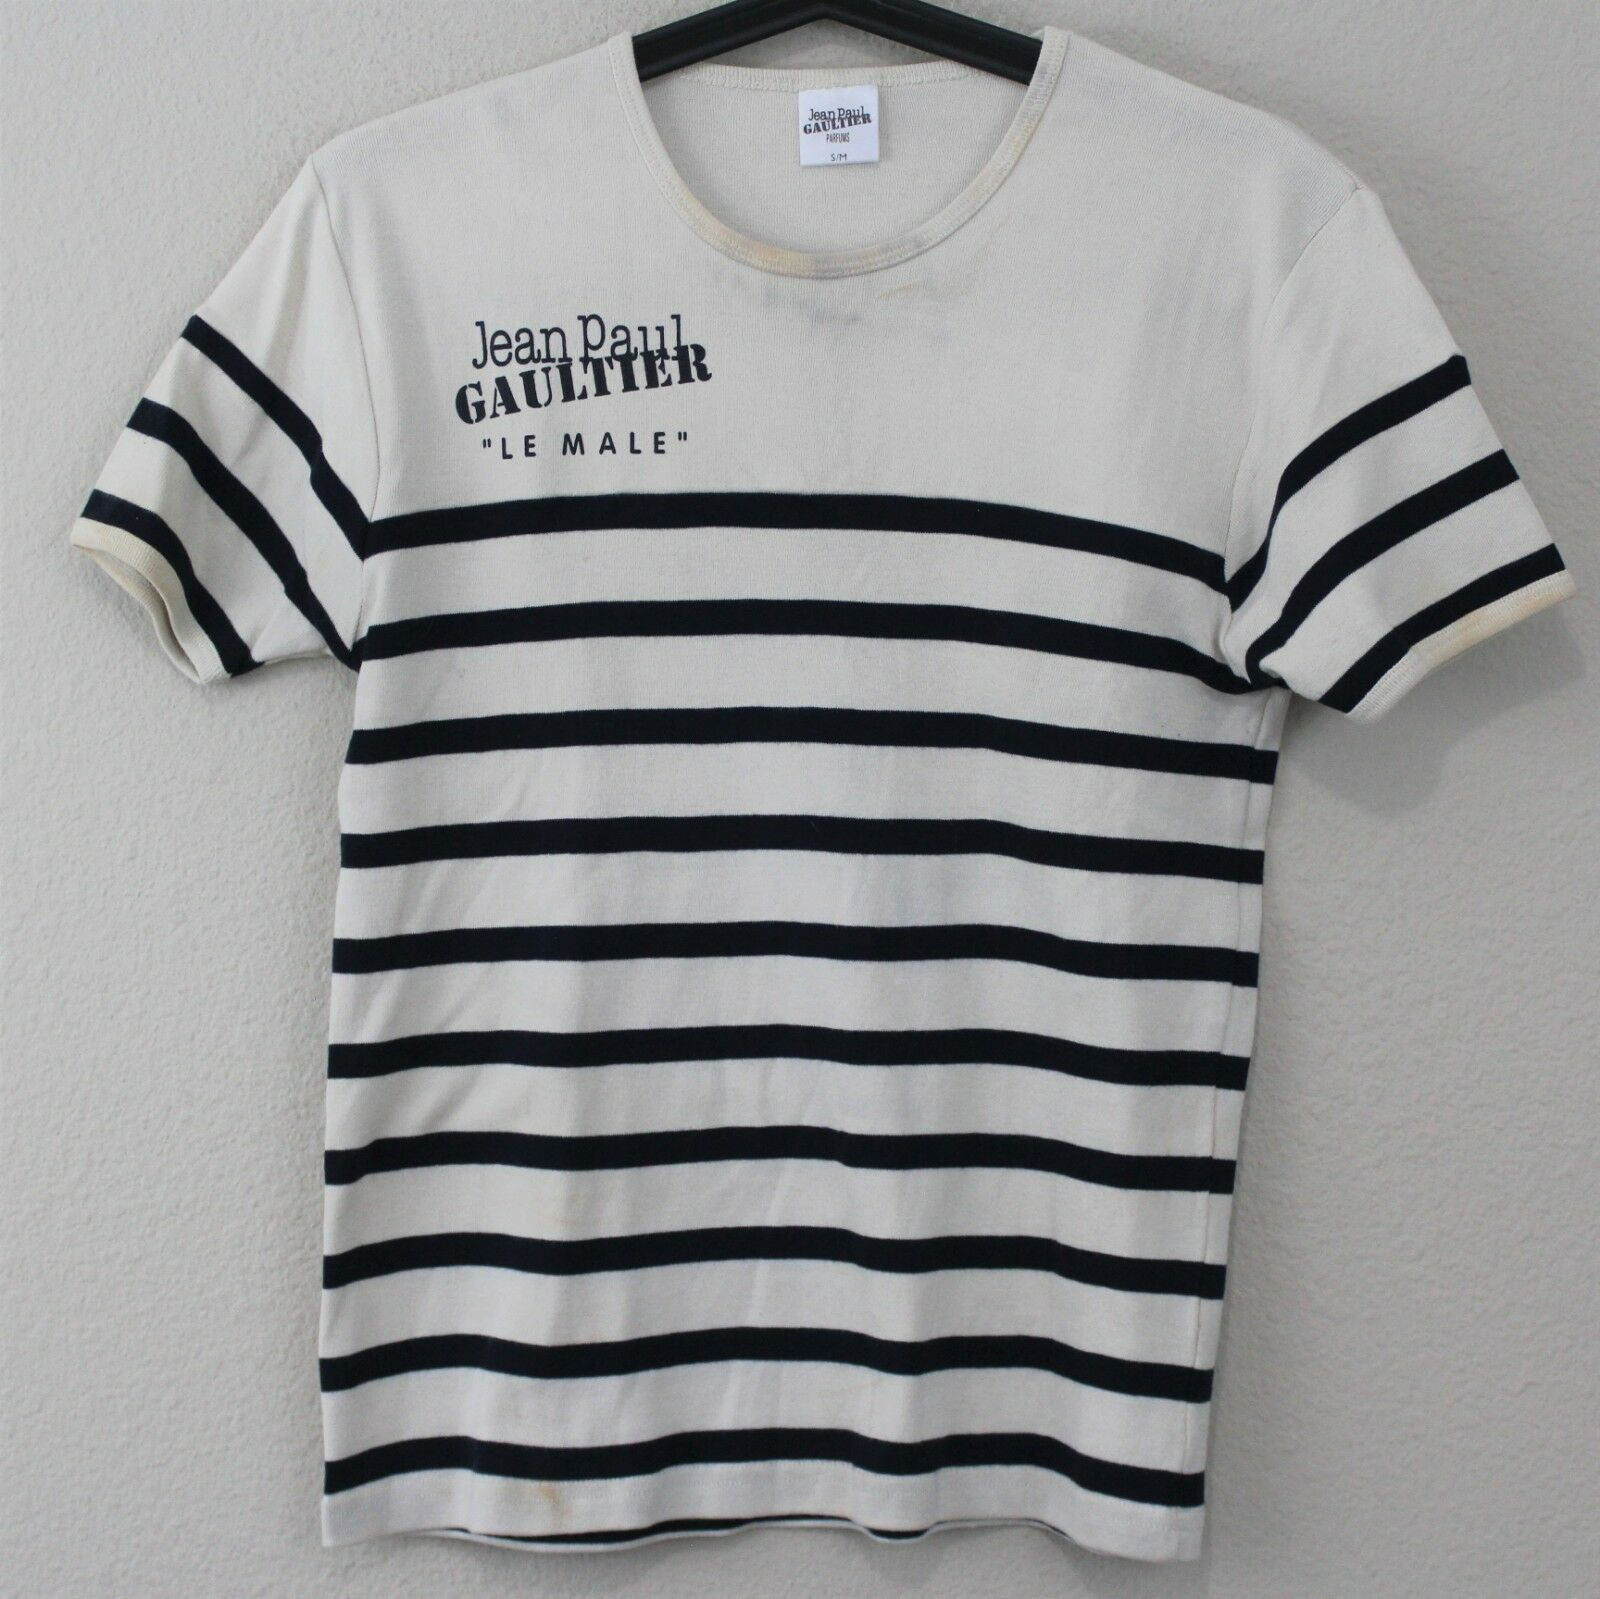 VTG Jean Paul Gaultier Womens Small   Medium Rare Spell Out Le Male T-Shirt A371